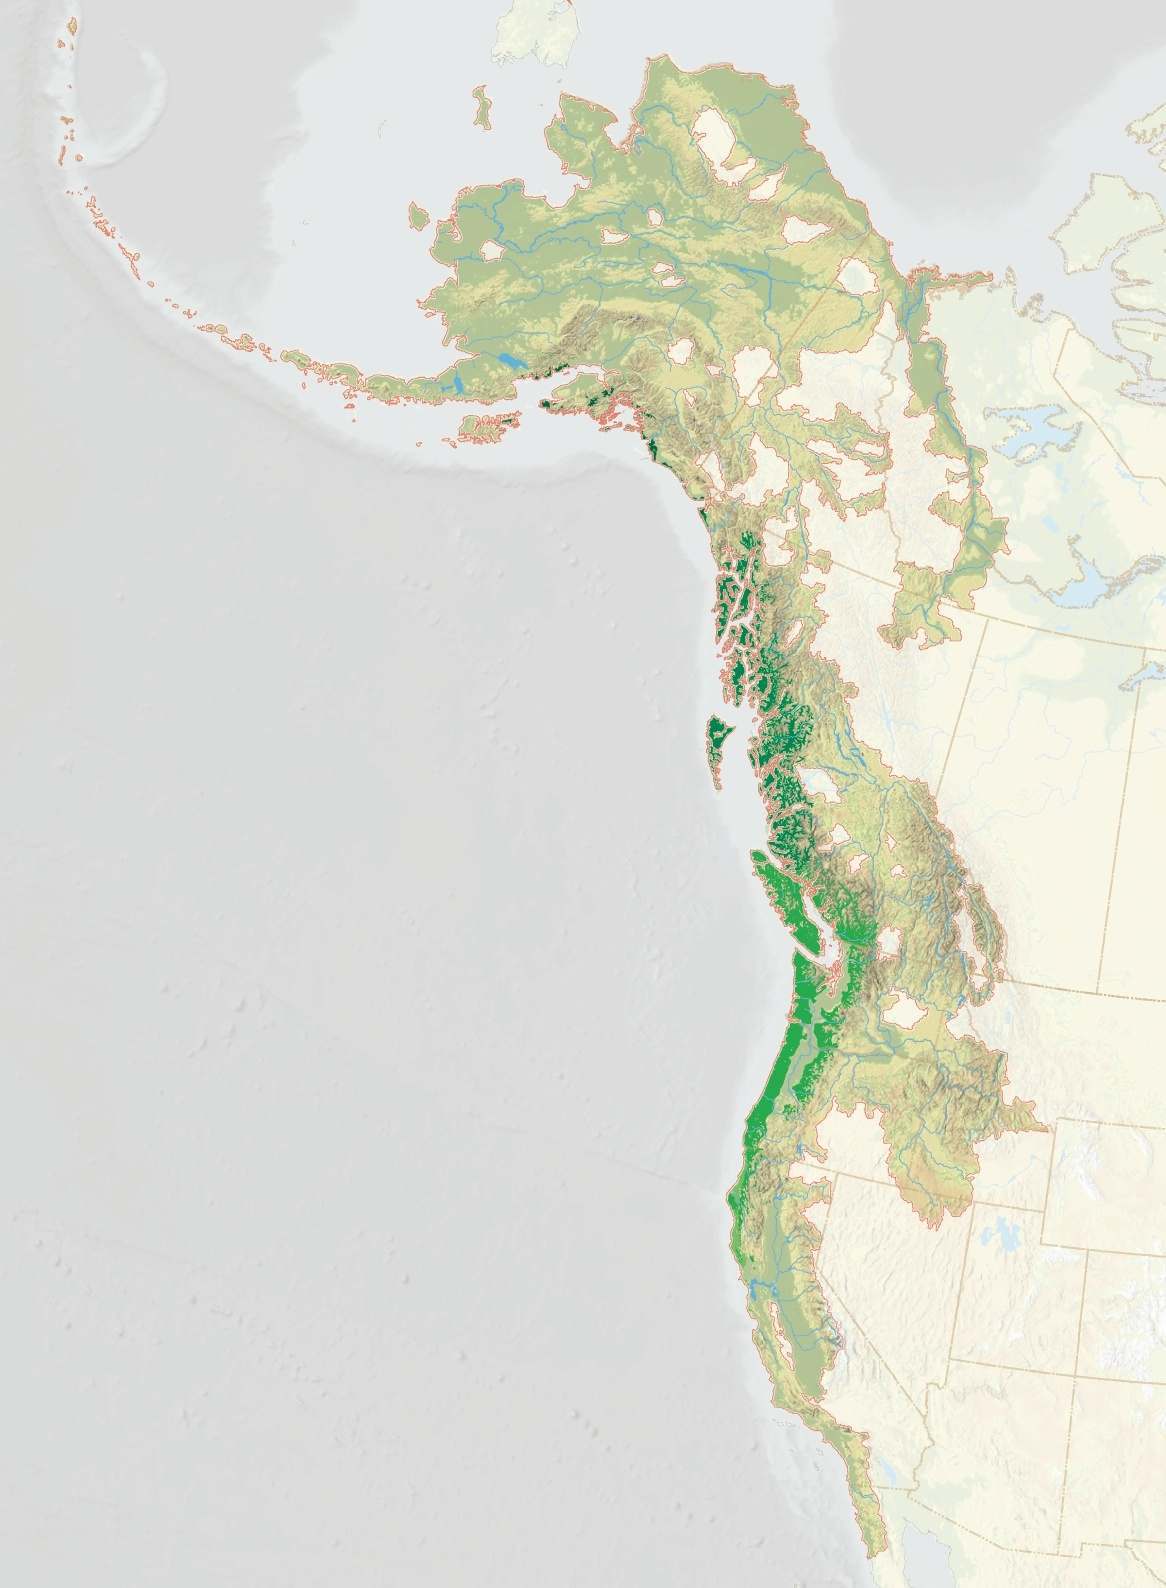 """1995—Coastal Temperate Rainforests: In the early 1990s, Ecotrust founder Spencer Beebe and colleagues began mapping the world's rare coastal temperate rain forests. They found that nearly 50 percent of the original forest (Pacific Northwest historical forest is dark green, above) had been lost. But the biggest stand left was in the Pacific Northwest, stretching from northern California to Southeast Alaska. Born and raised in Oregon, Beebe decided to localize his international focus to """"the rain forests of home."""" Ecotrust would be the vehicle for this new regionally focused work."""